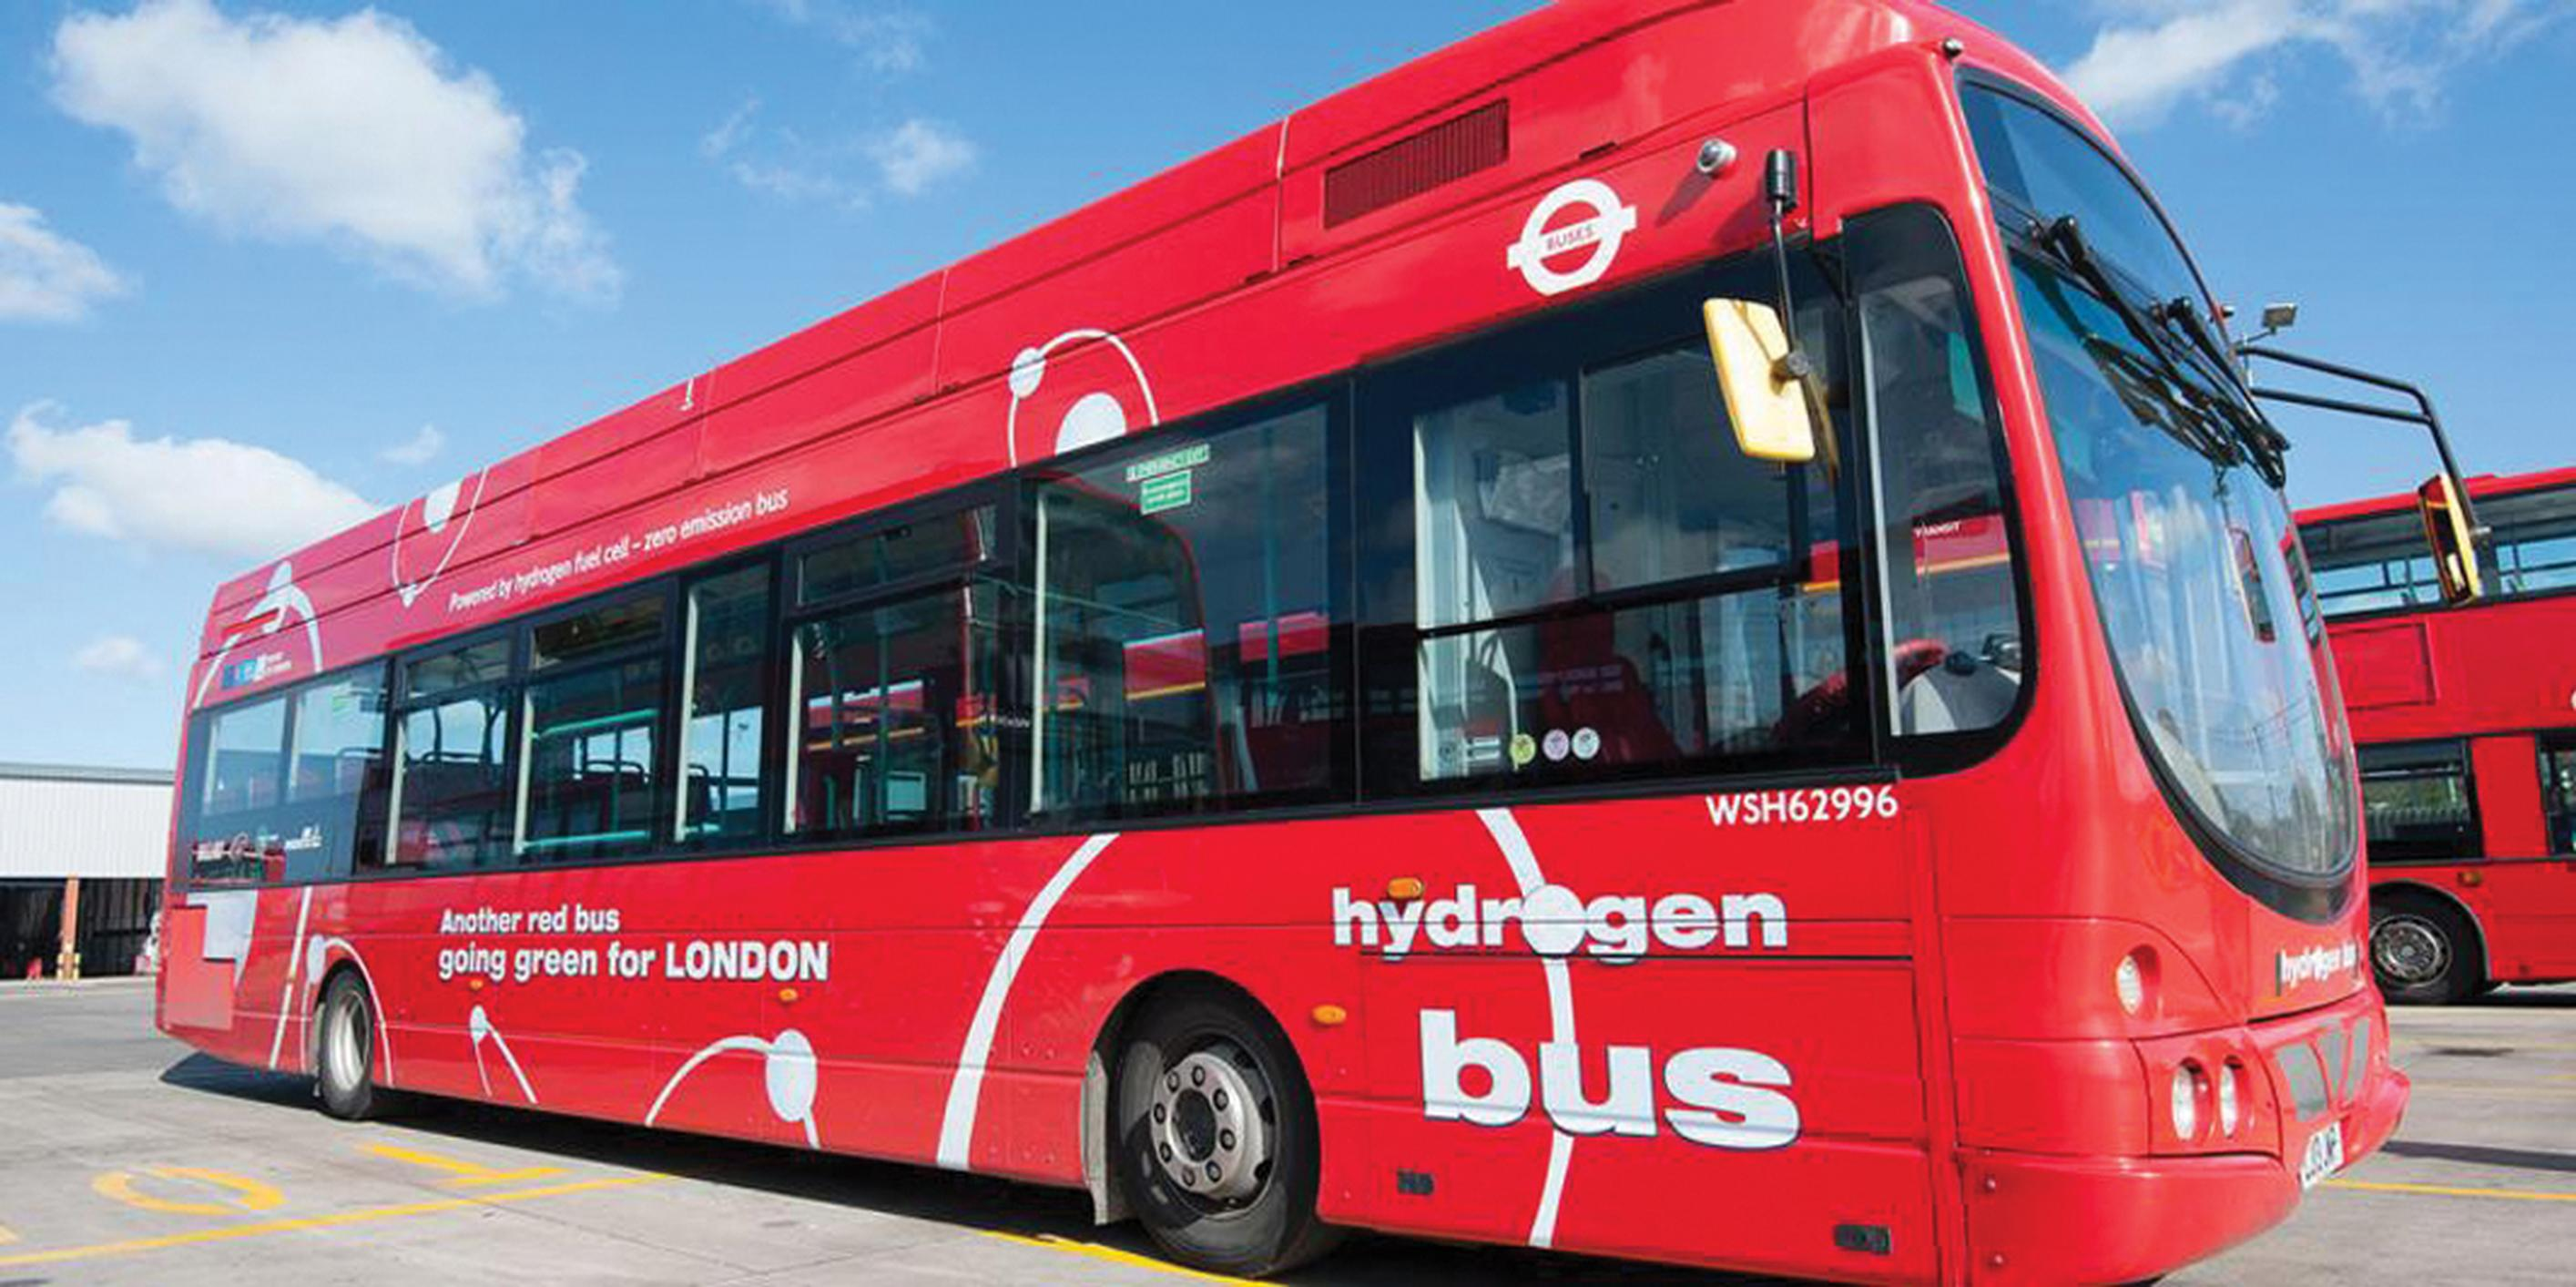 The back-to-base nature of bus operations make them suitable for hydrogen, says the Committee